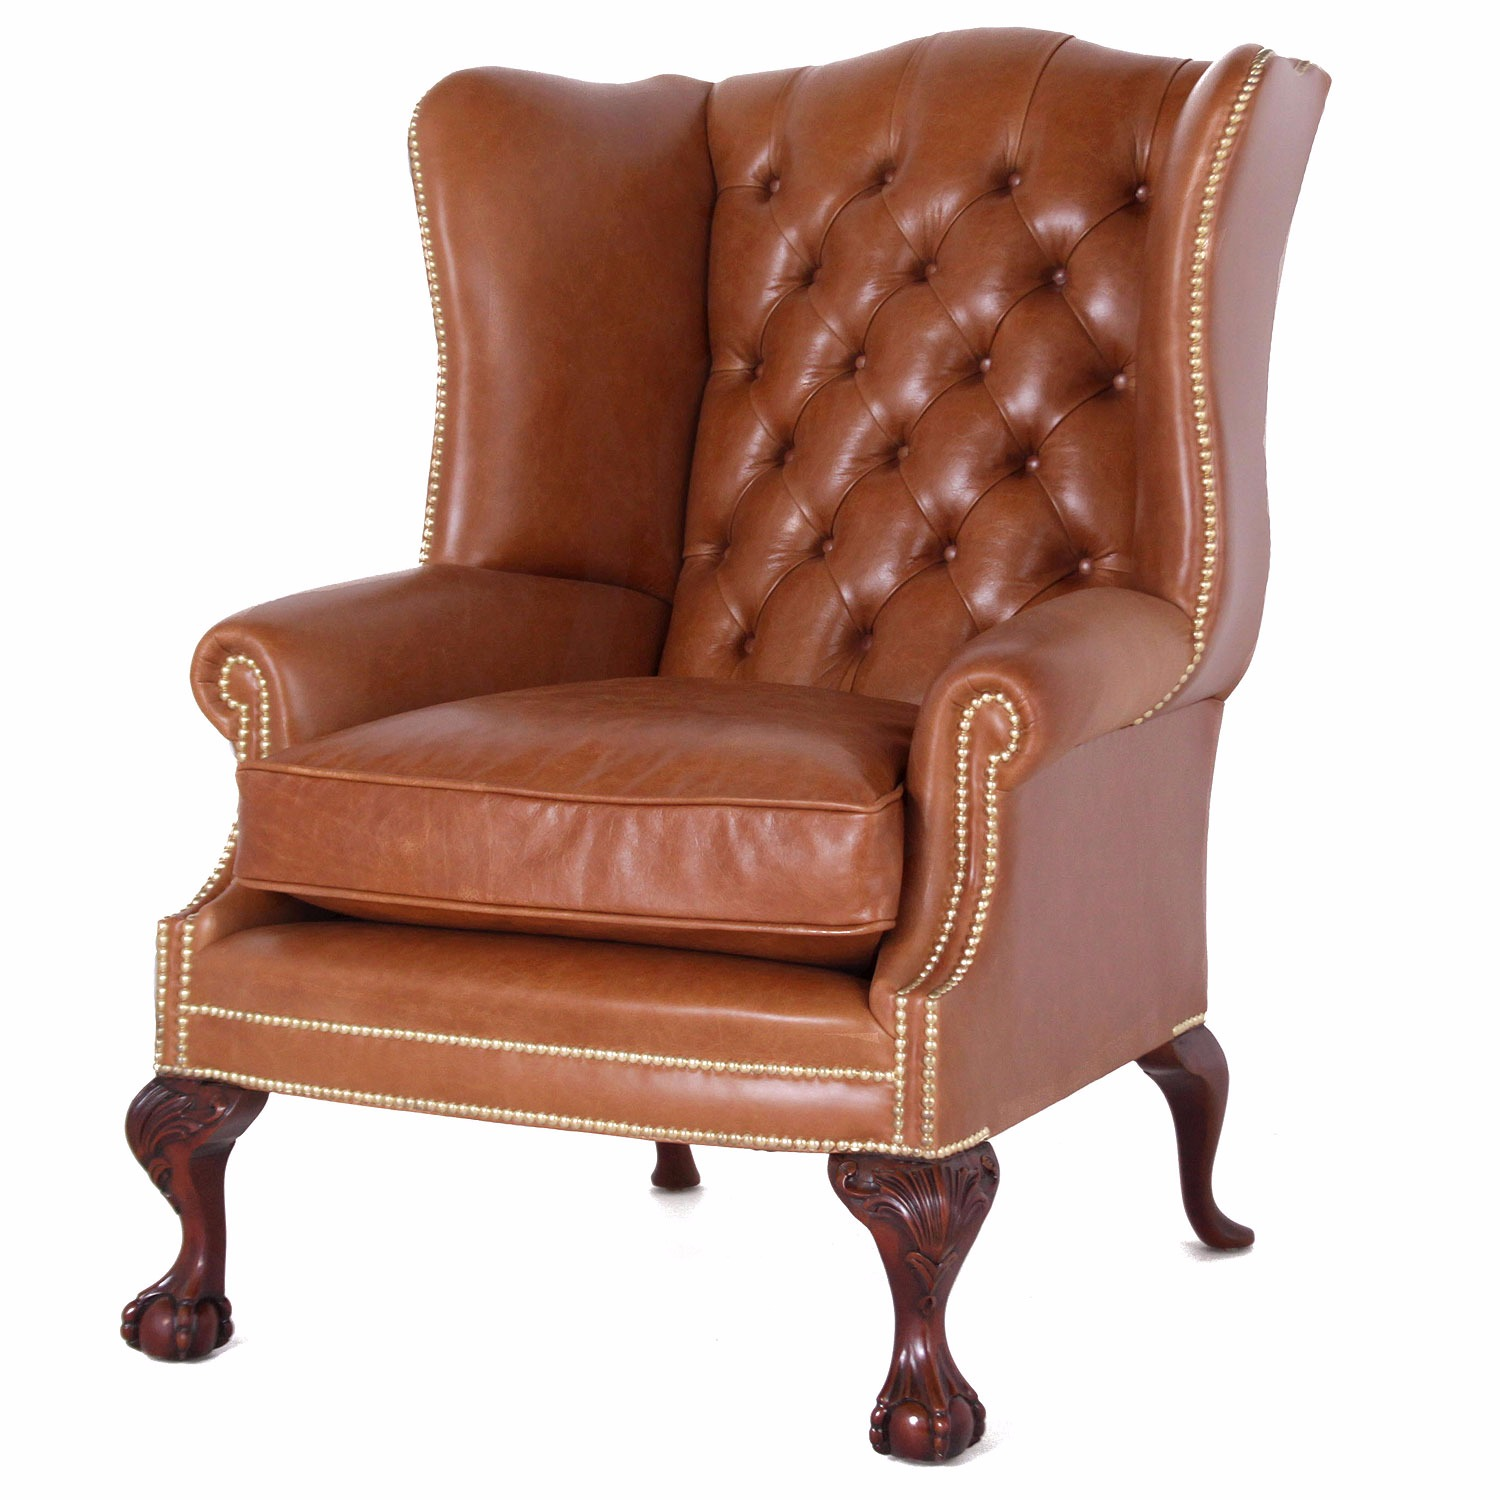 Coleridge buttoned wing chair in tan leather Leather Chairs in